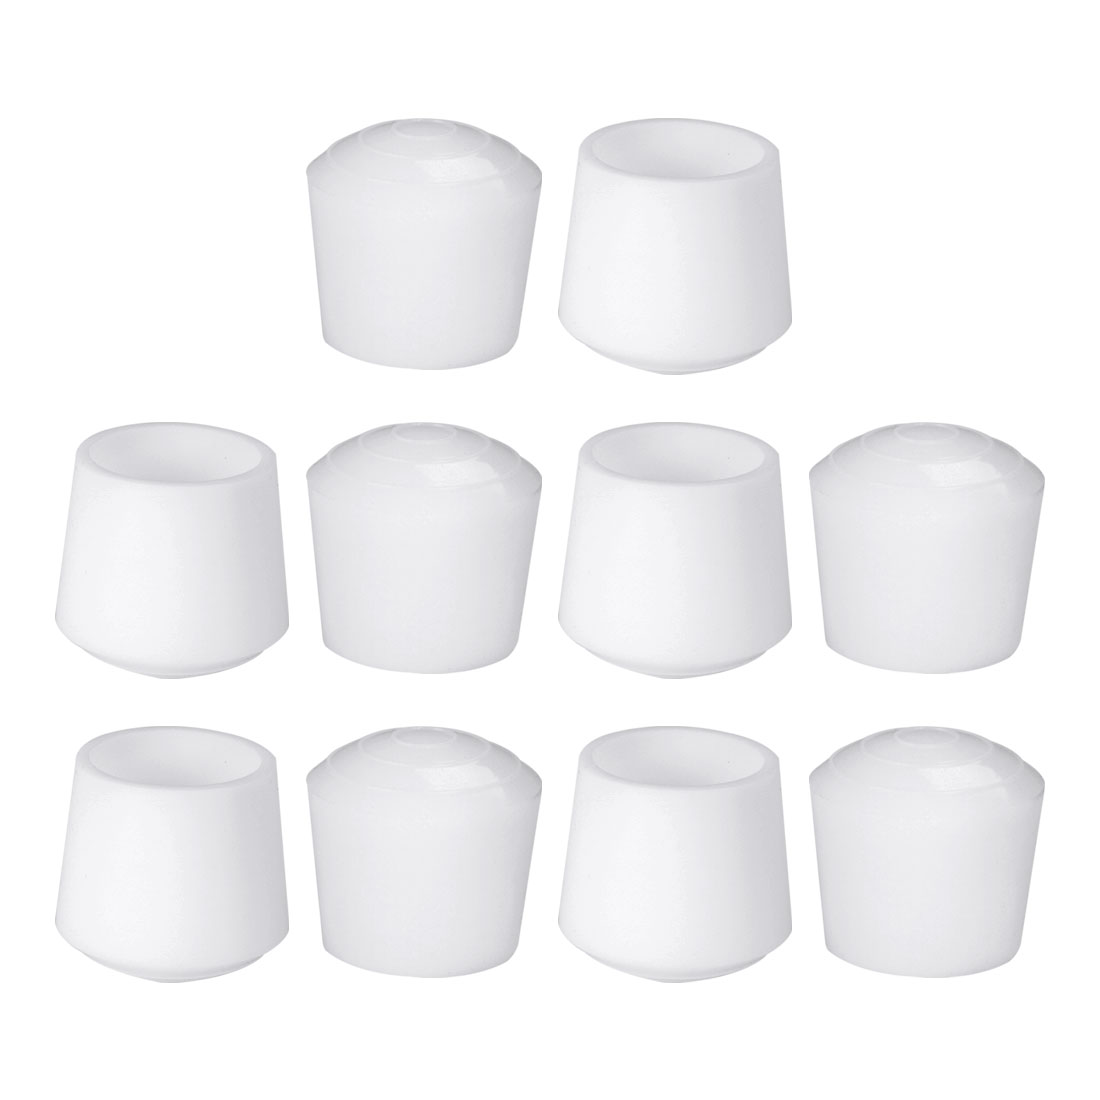 "Rubber Leg Caps Tip Cup Feet Cover 32mm 1 1/4"" Inner Dia 10pcs for Furniture"